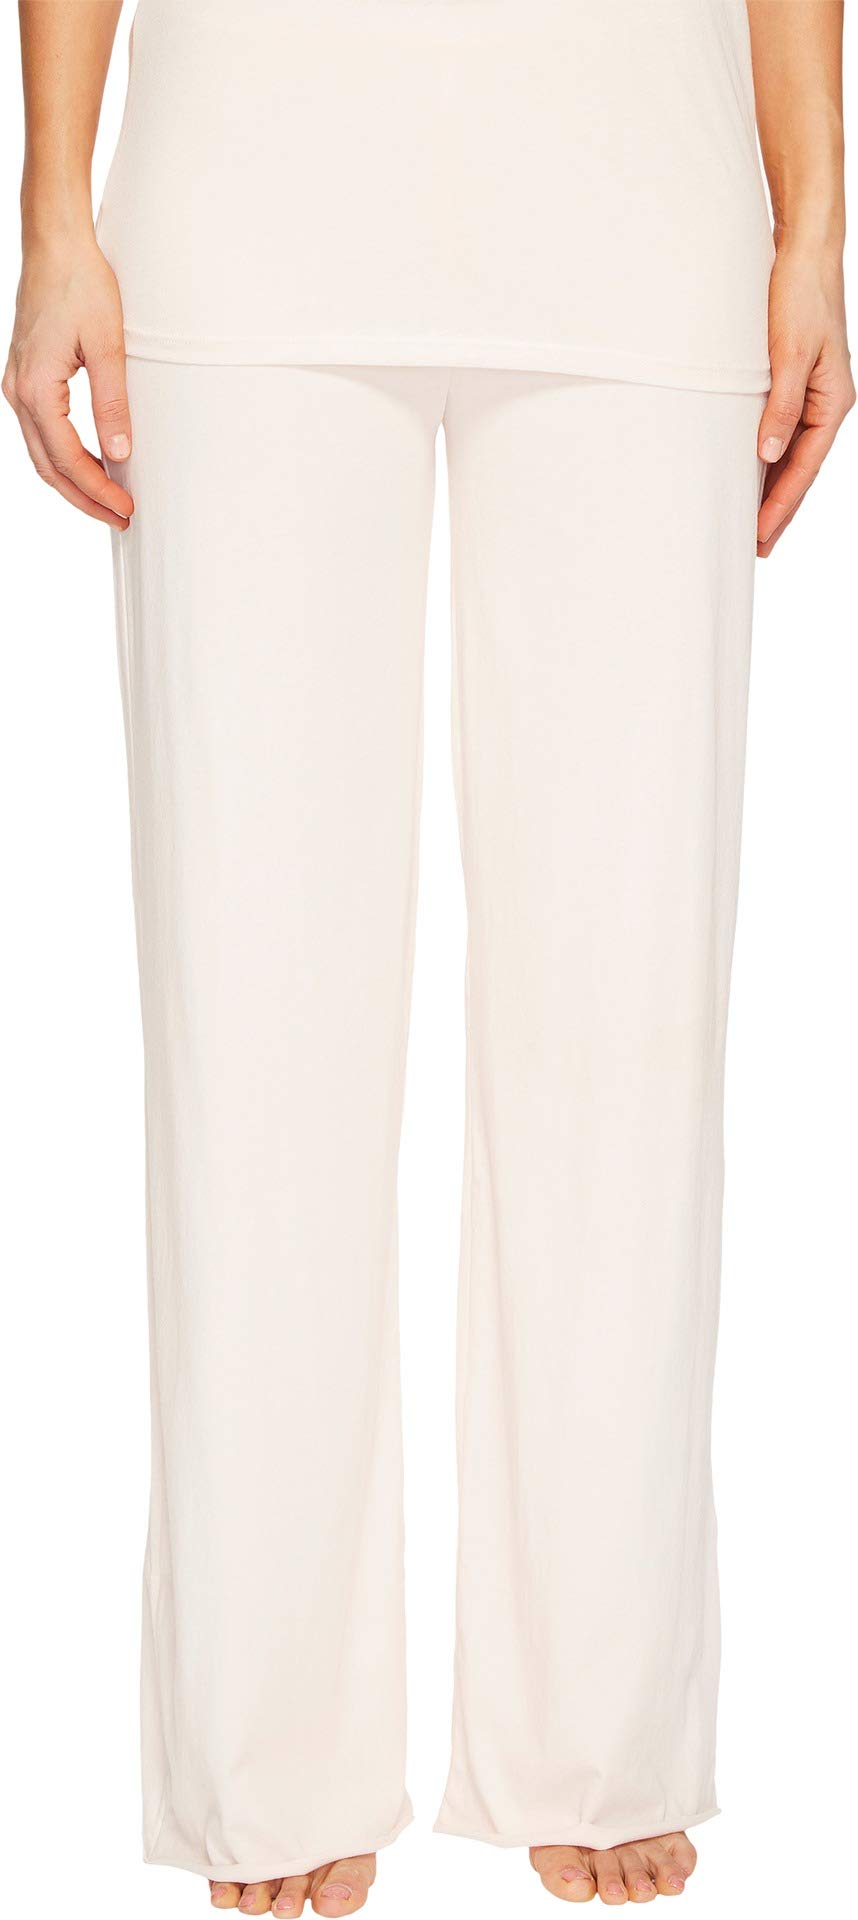 Skin Women's Double Layer Pants Pearl Pink 4